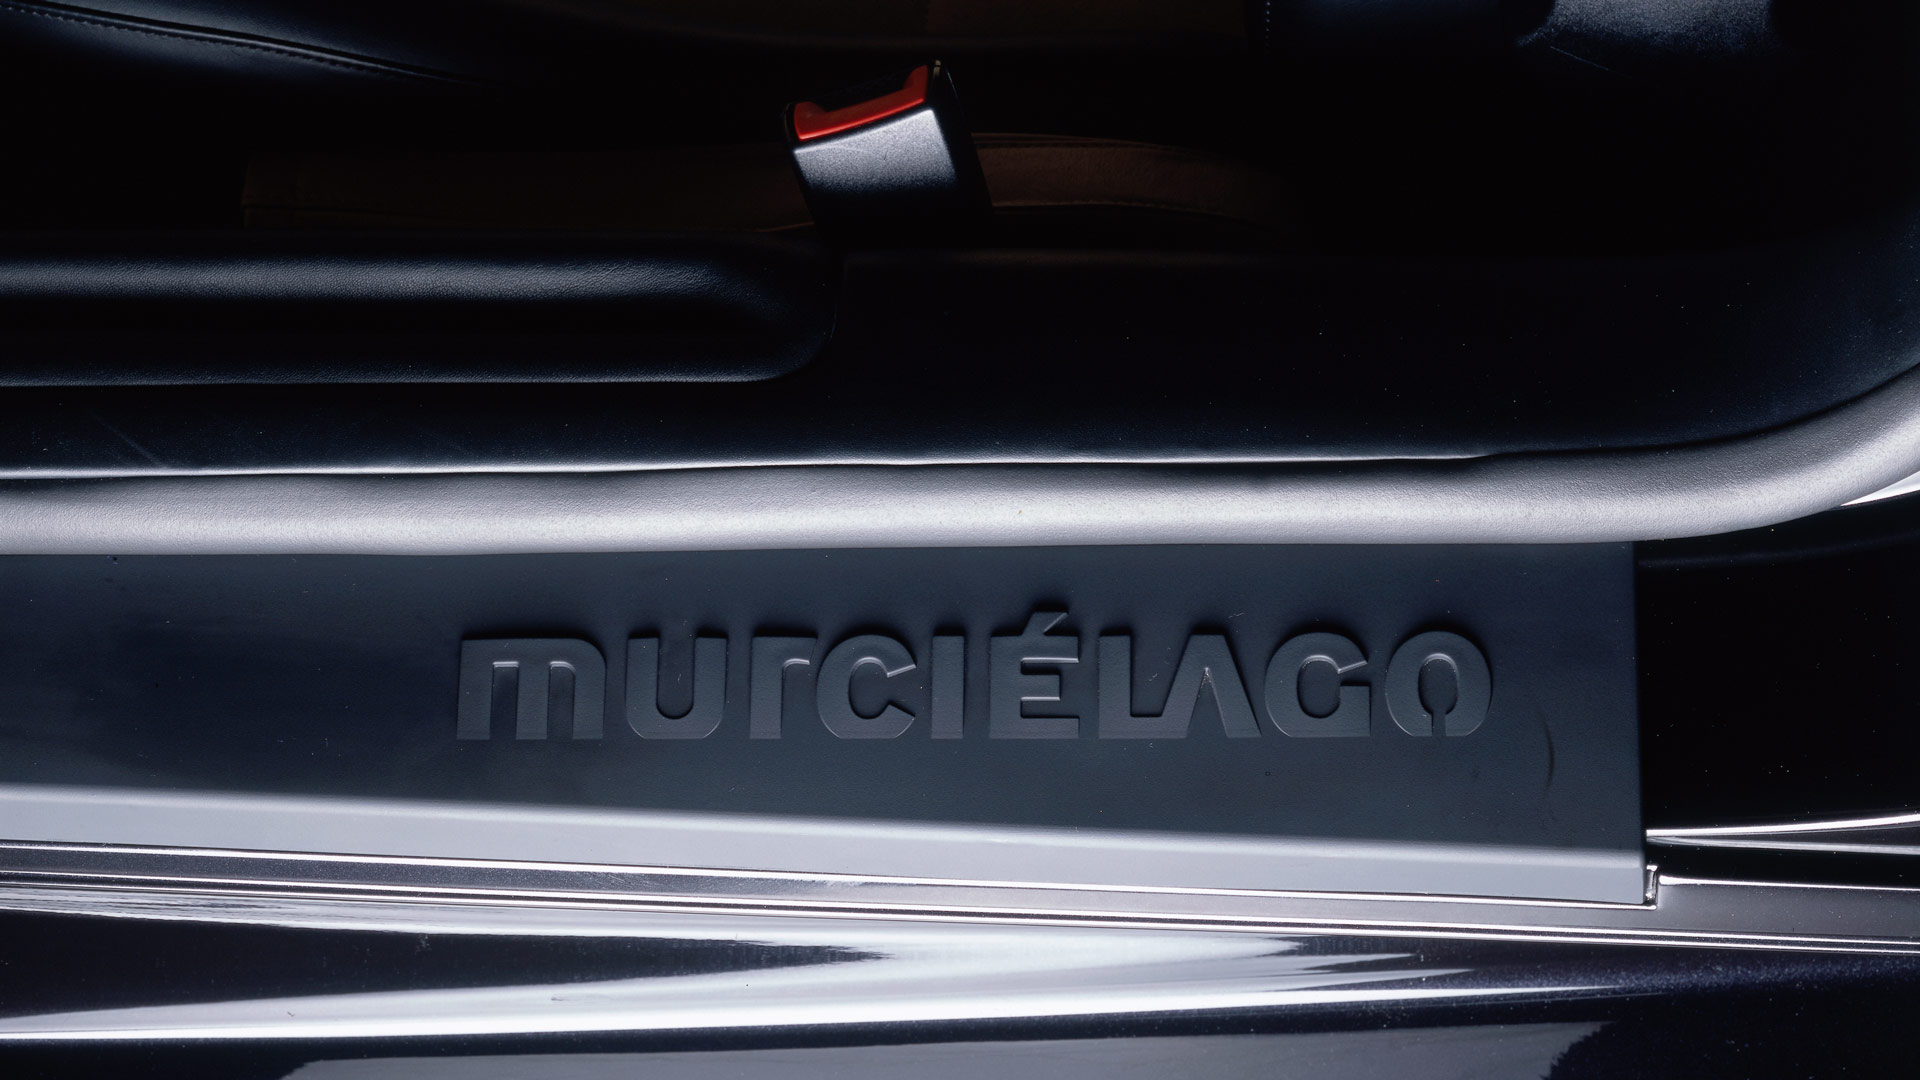 The name of the Murcielago model is written on the side skirts of the car.